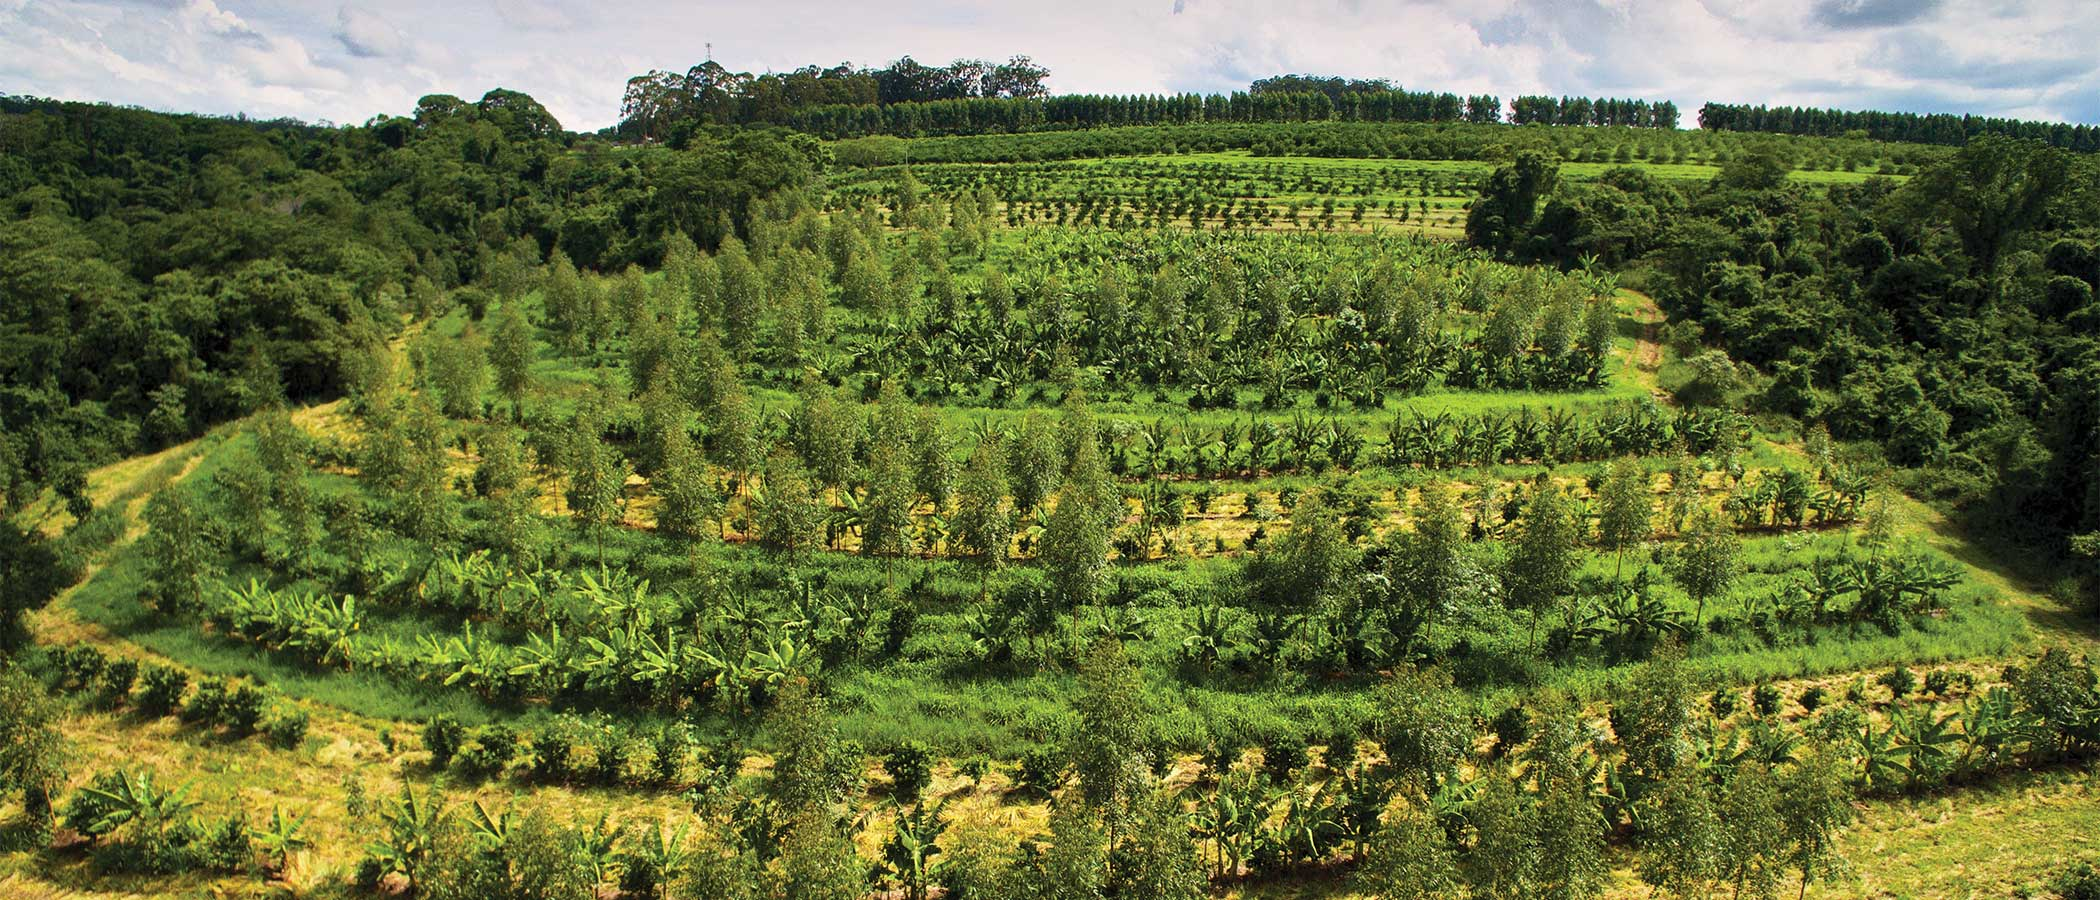 Hillside of a farm employing regenerative farming and agroforestry practices.